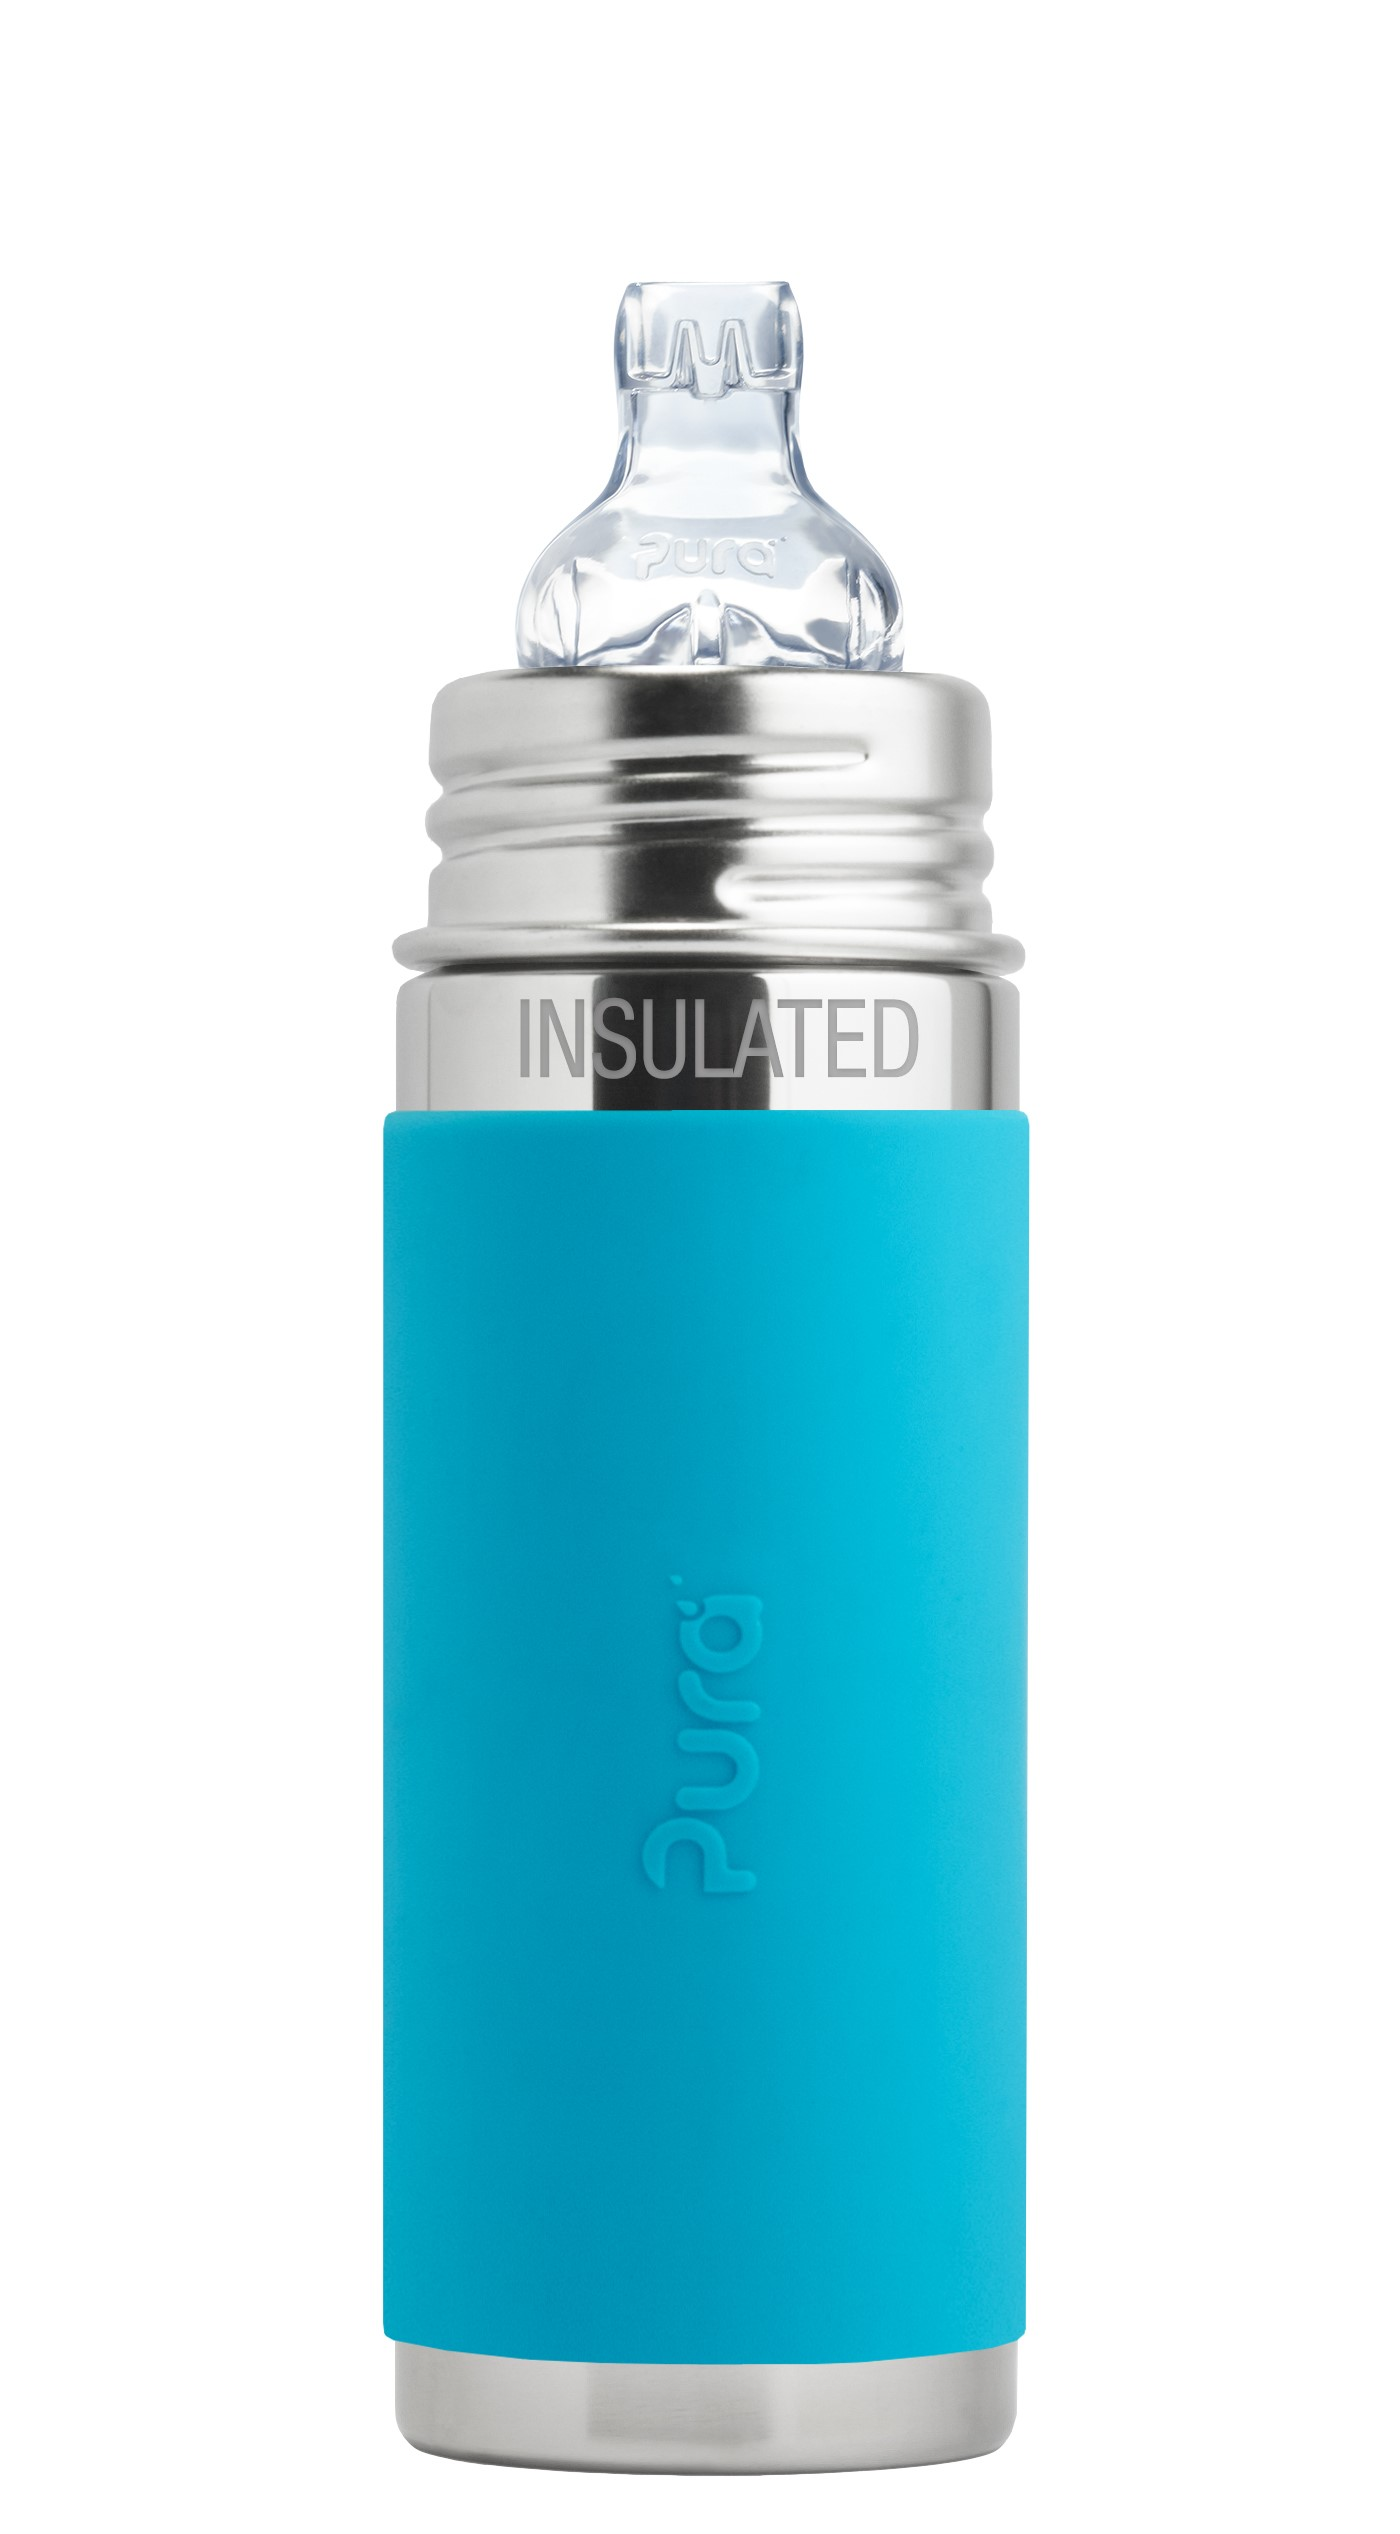 Pura Kiki 9 oz   260 ml Stainless Steel Insulated Sippy Cup with Silicone XL Sipper & Sleeve, Aqua (Plastic... by Pura Stainless